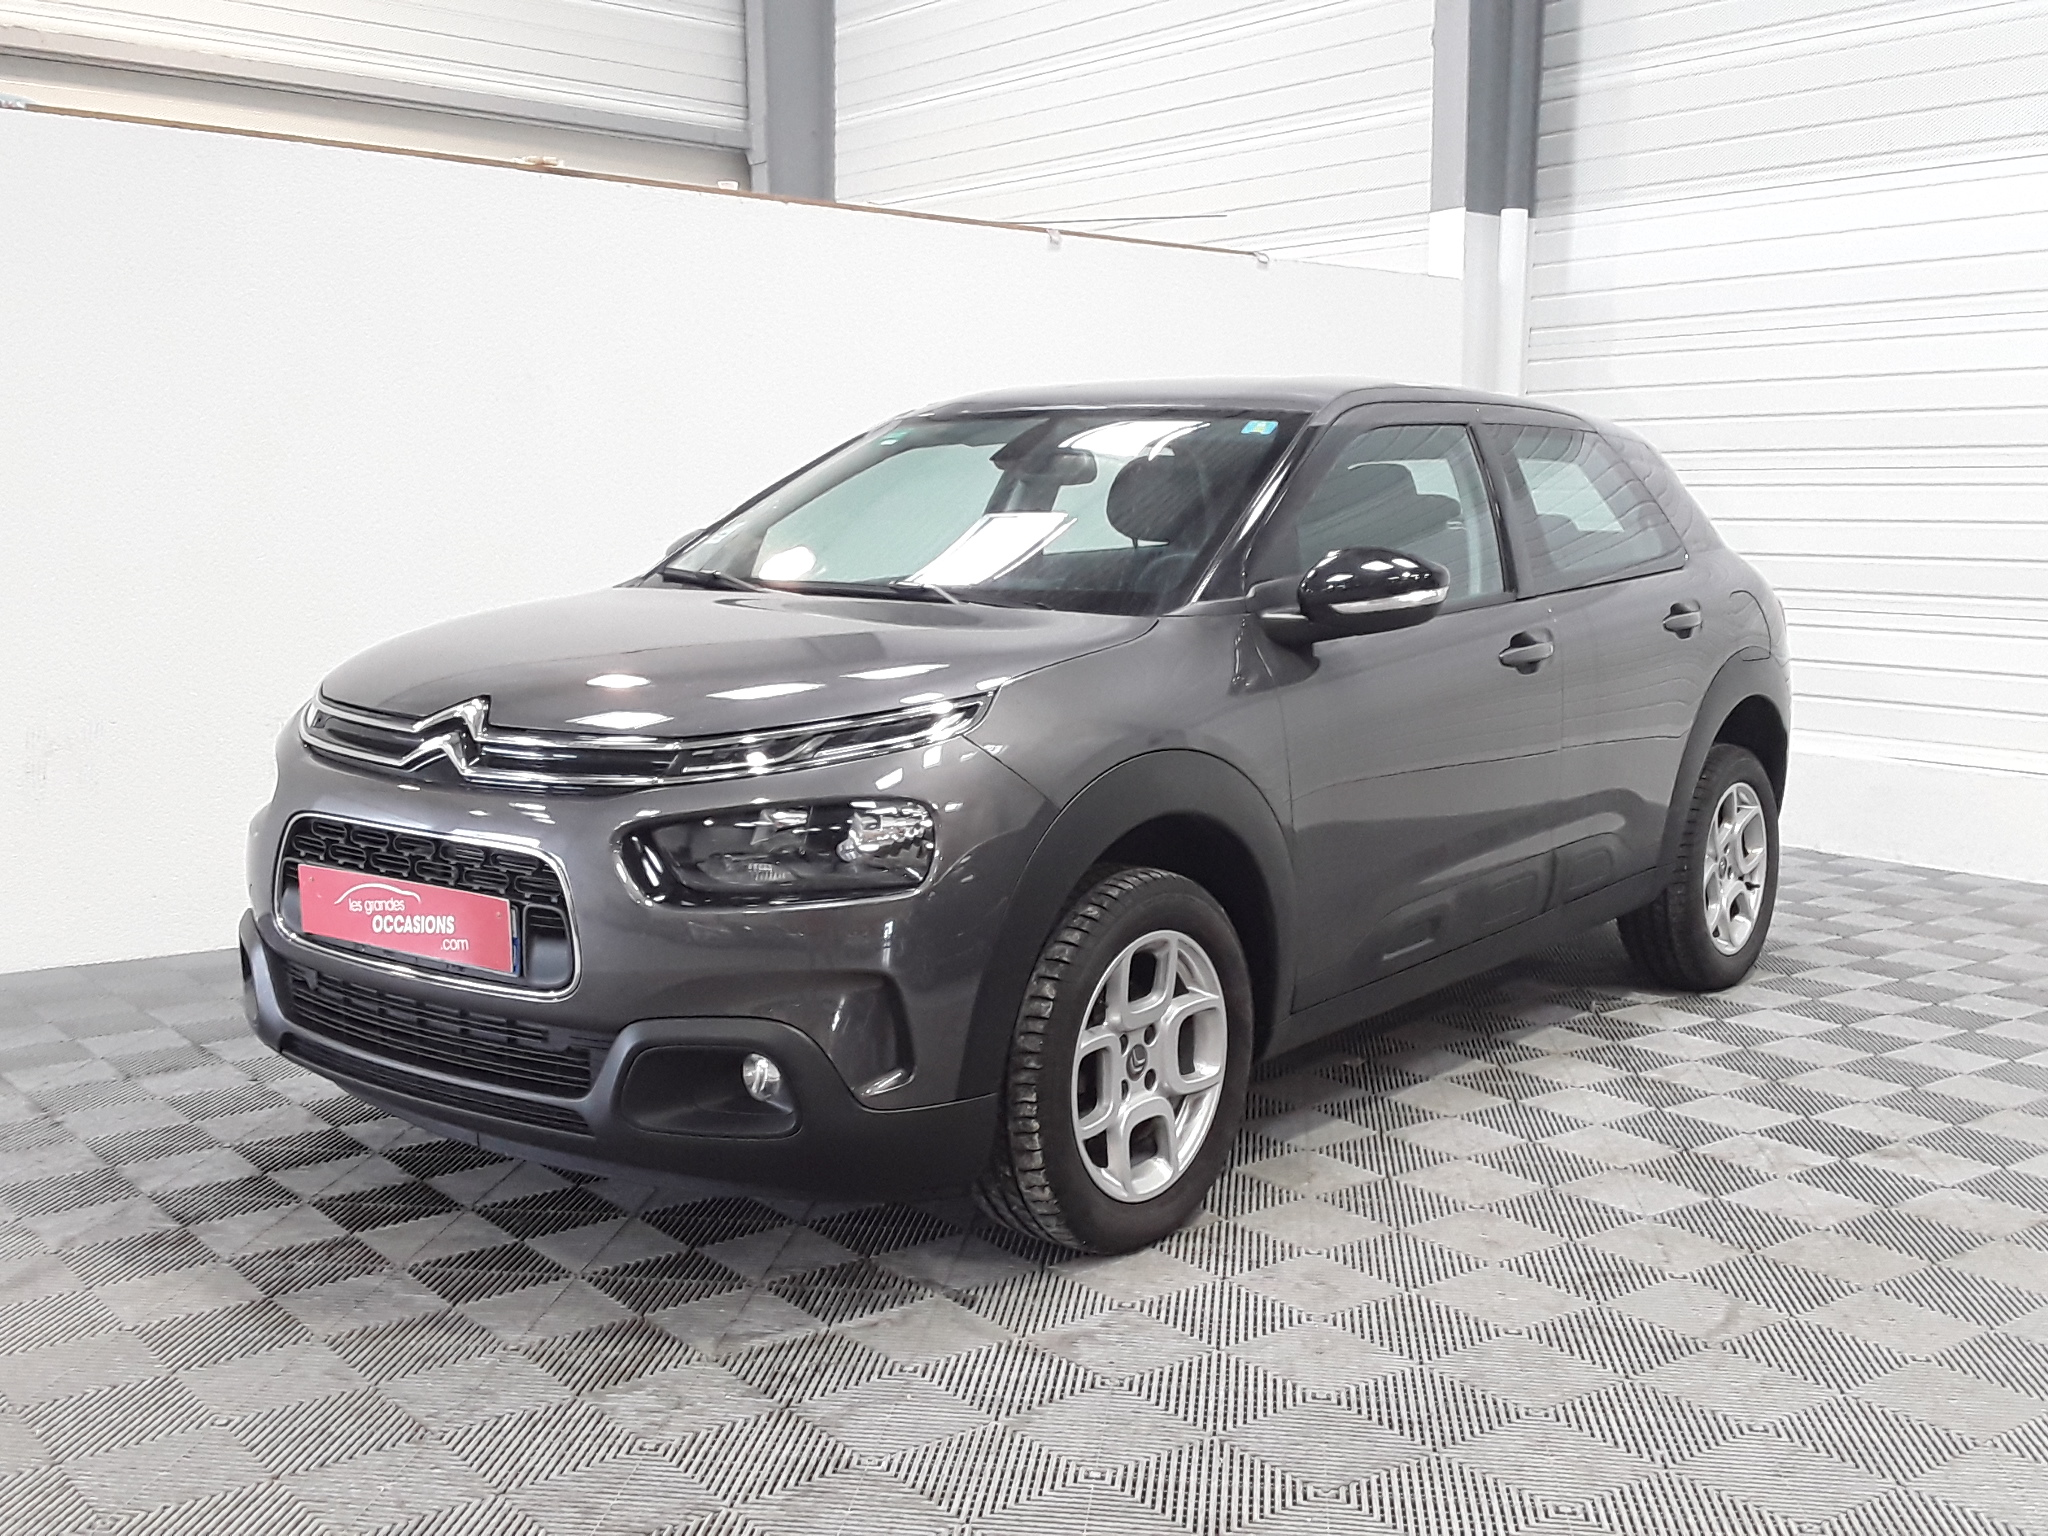 CITROEN C4 CACTUS PureTech 110 S&S EAT6 Feel d'occasion